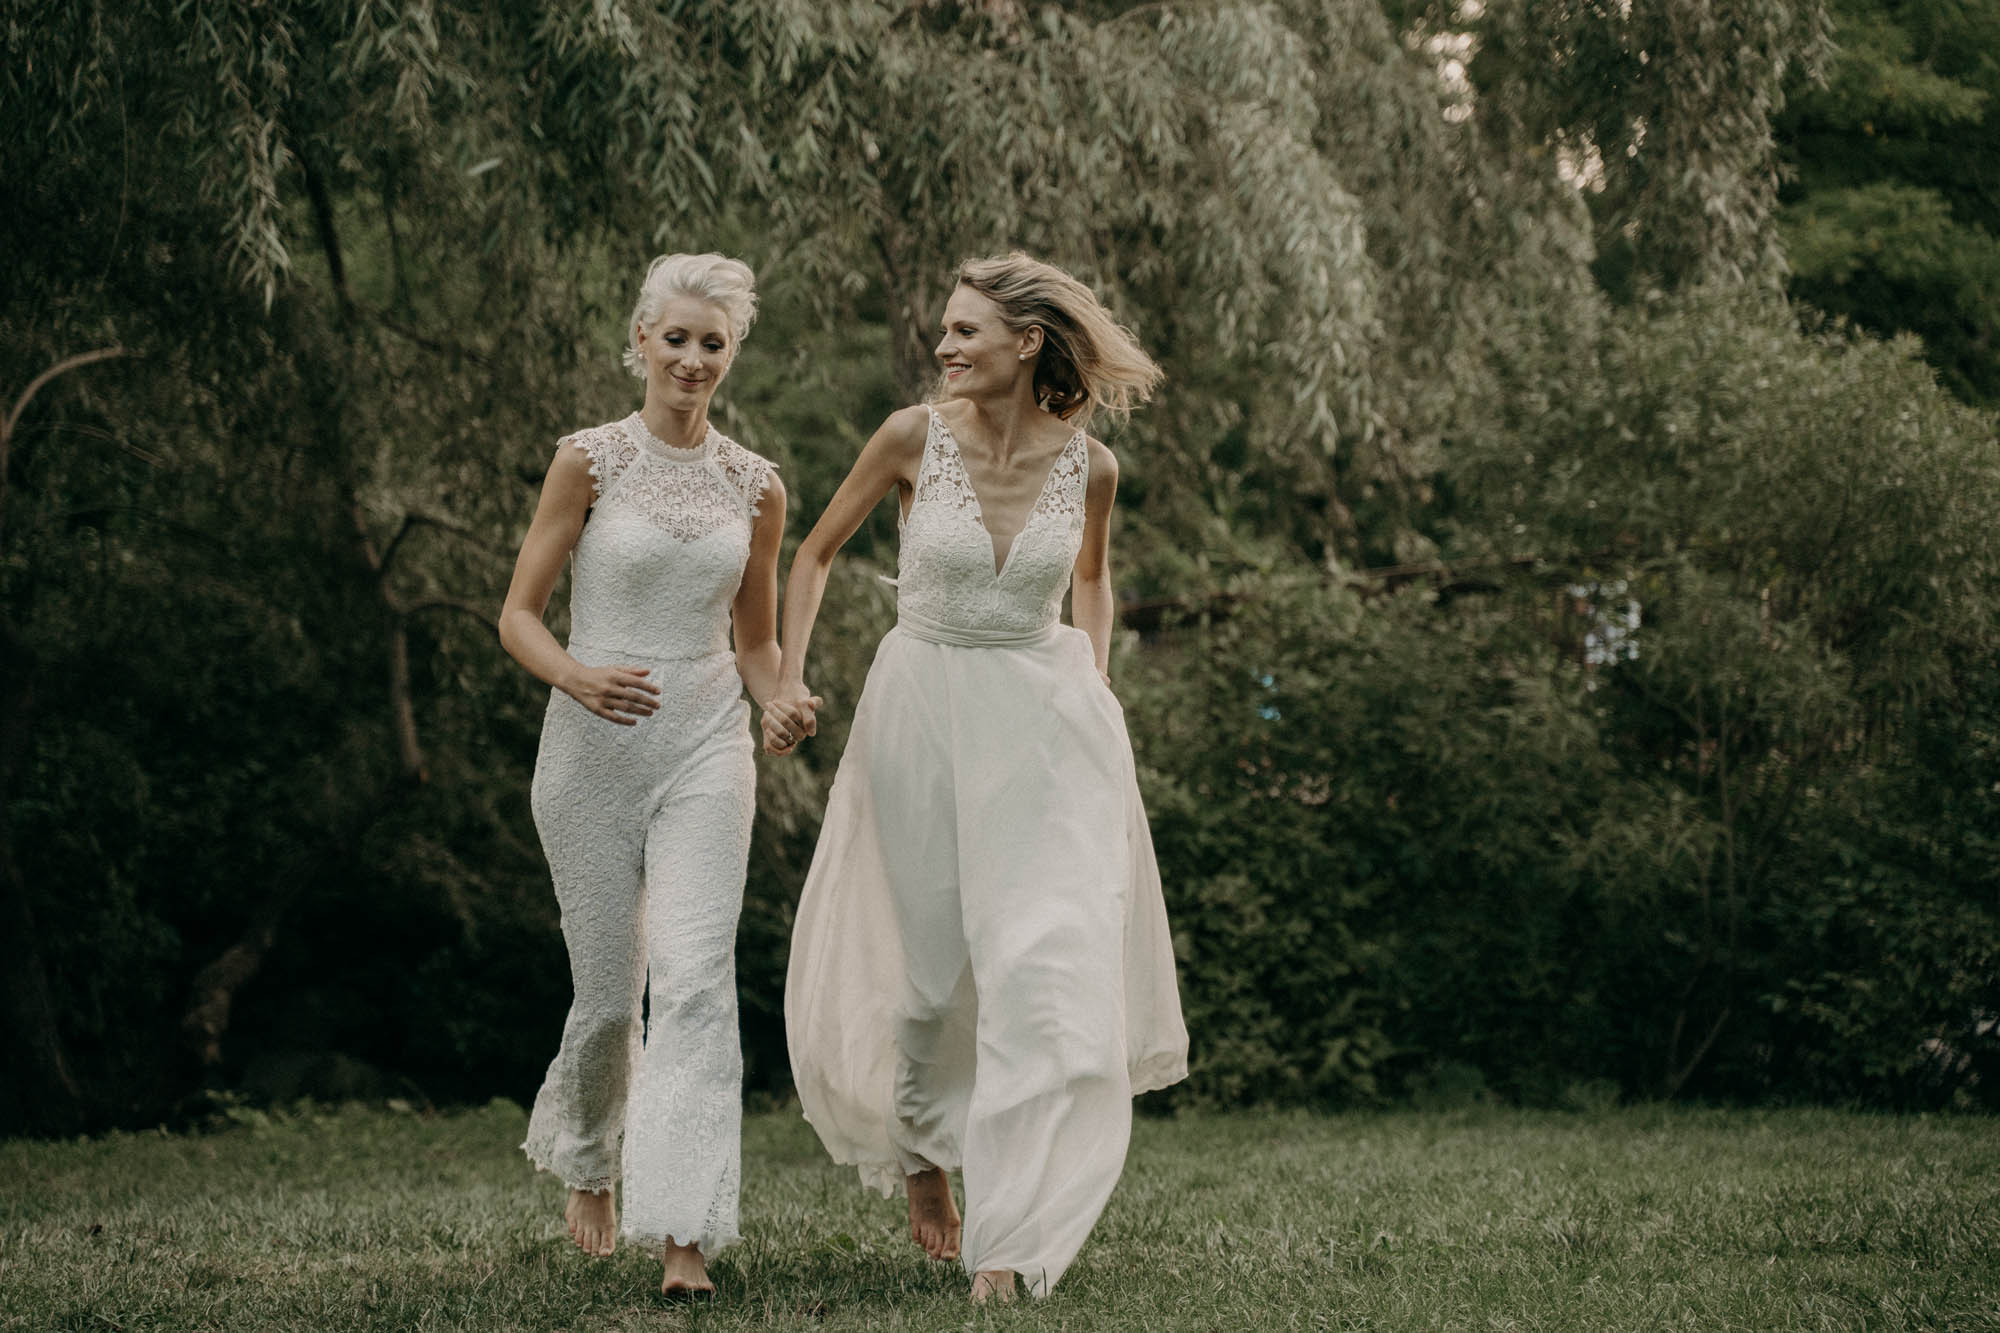 Toronto Wedding Photography - COVID Wedding - Two Brides - Dancing With Her